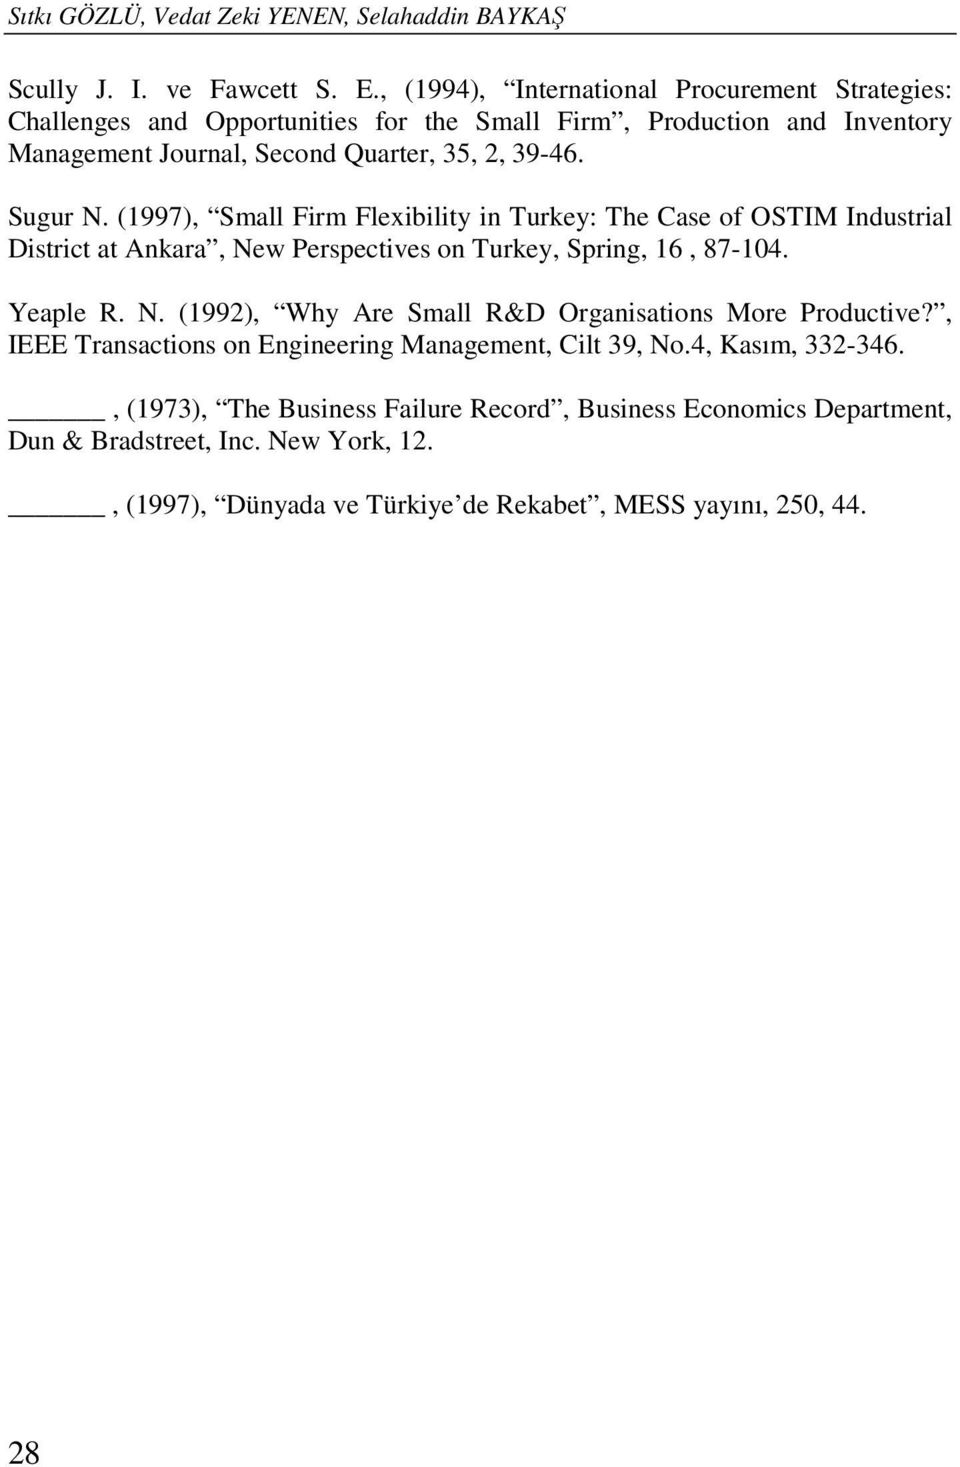 Sugur N. (1997), Small Firm Flexibility in Turkey: The Case of OSTIM Industrial District at Ankara, New Perspectives on Turkey, Spring, 16, 87-104. Yeaple R. N. (1992), Why Are Small R&D Organisations More Productive?